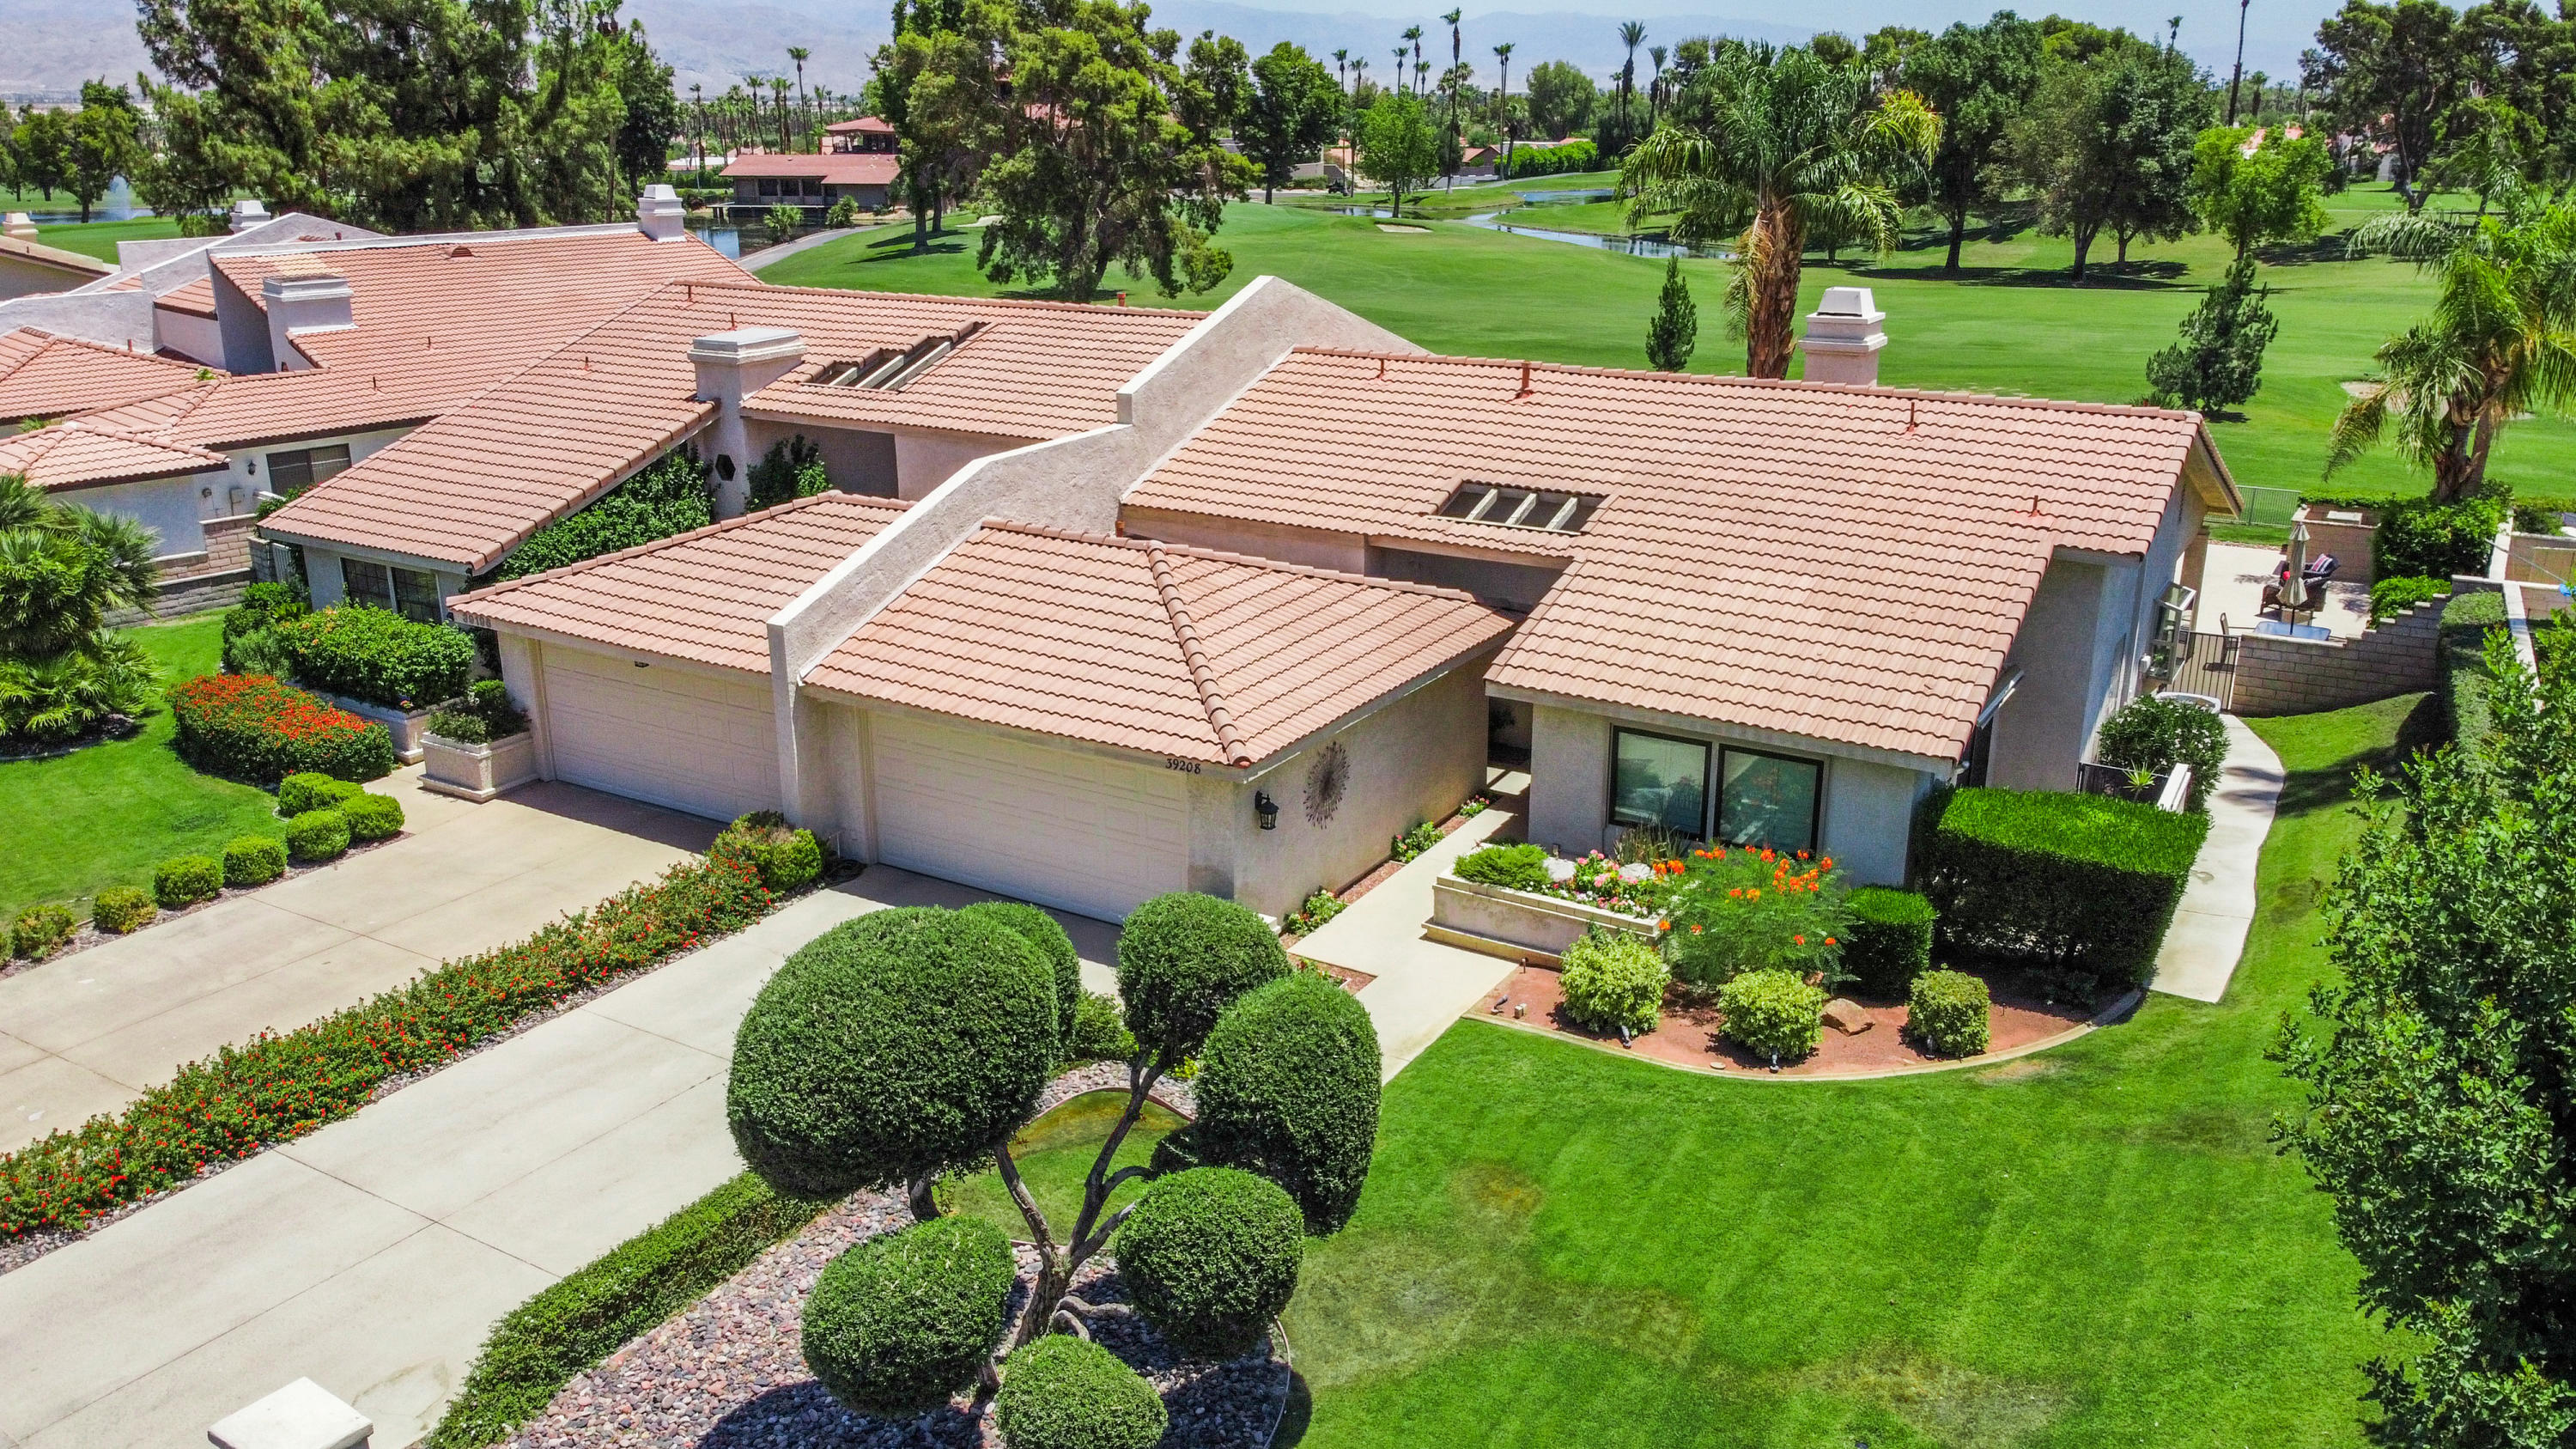 Enjoy golf course and mountain views right on the 18th Fairway of the popular Avondale Country Club. Still owned by the original owner! Large wrap around patio for entertaining outside plus luxury adjustable covered patio area! This is the perfect place to be if you love to golf. Three bedroom, highly upgraded home with newer private pool and spa add to the fun in the sun and views here. Chefs kitchen with scenic views. Tile floors and NEW carpet throughout. Open great room floor plan with tile floors, vaulted ceilings, fireplace, adjustable powered blinds. Beautiful master bath with separate bath and shower. One bedroom serves as an office/bar/bedroom with sofa sleeper. Inside a 24 hour guard gated golf community, you have it all here with all the amenities you need for a wonderful retreat in the desert.